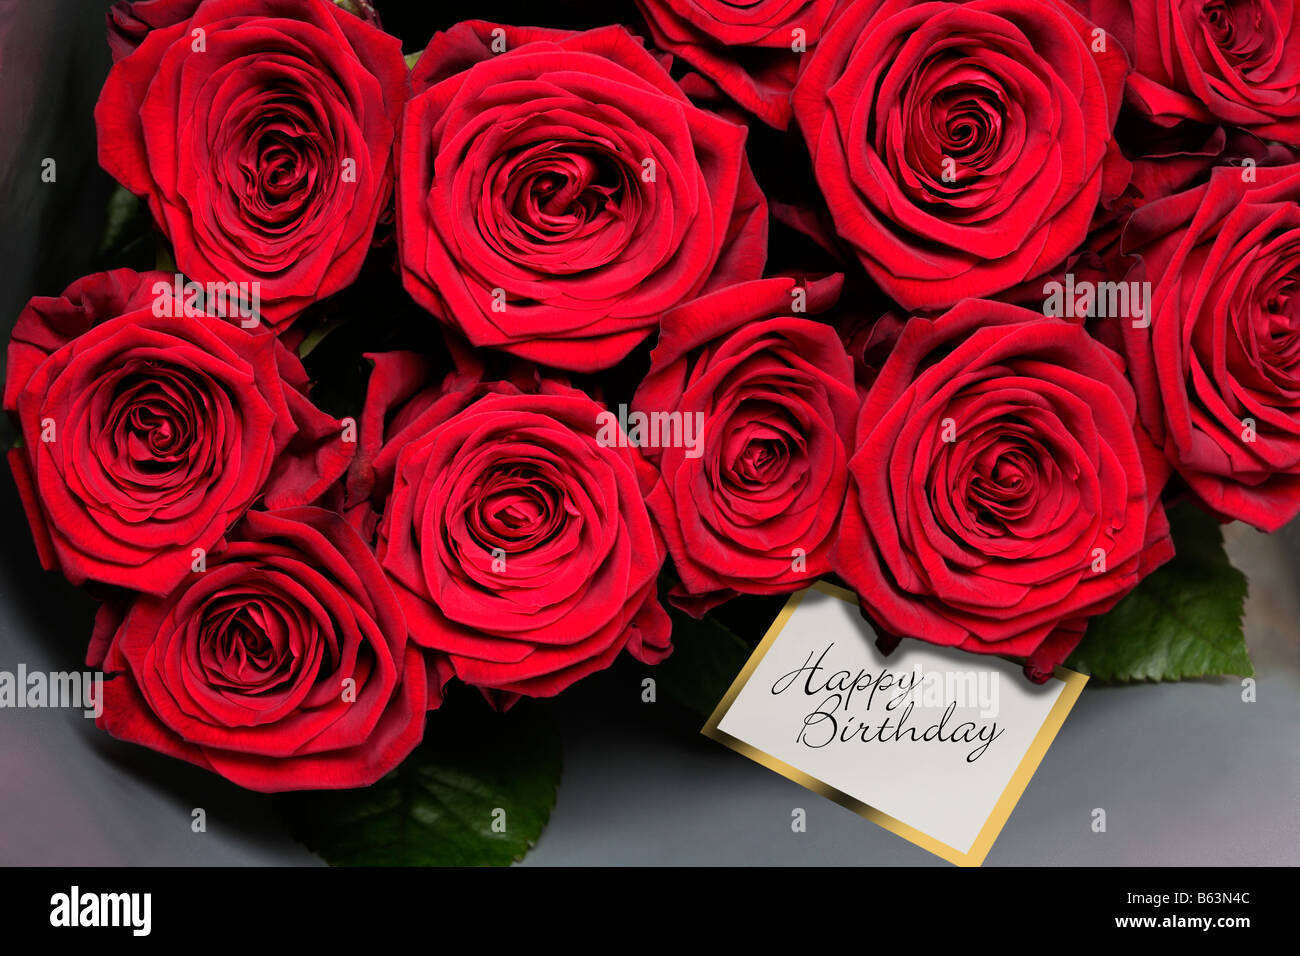 Red Roses With Happy Birthday Gift Tag Stock Photo